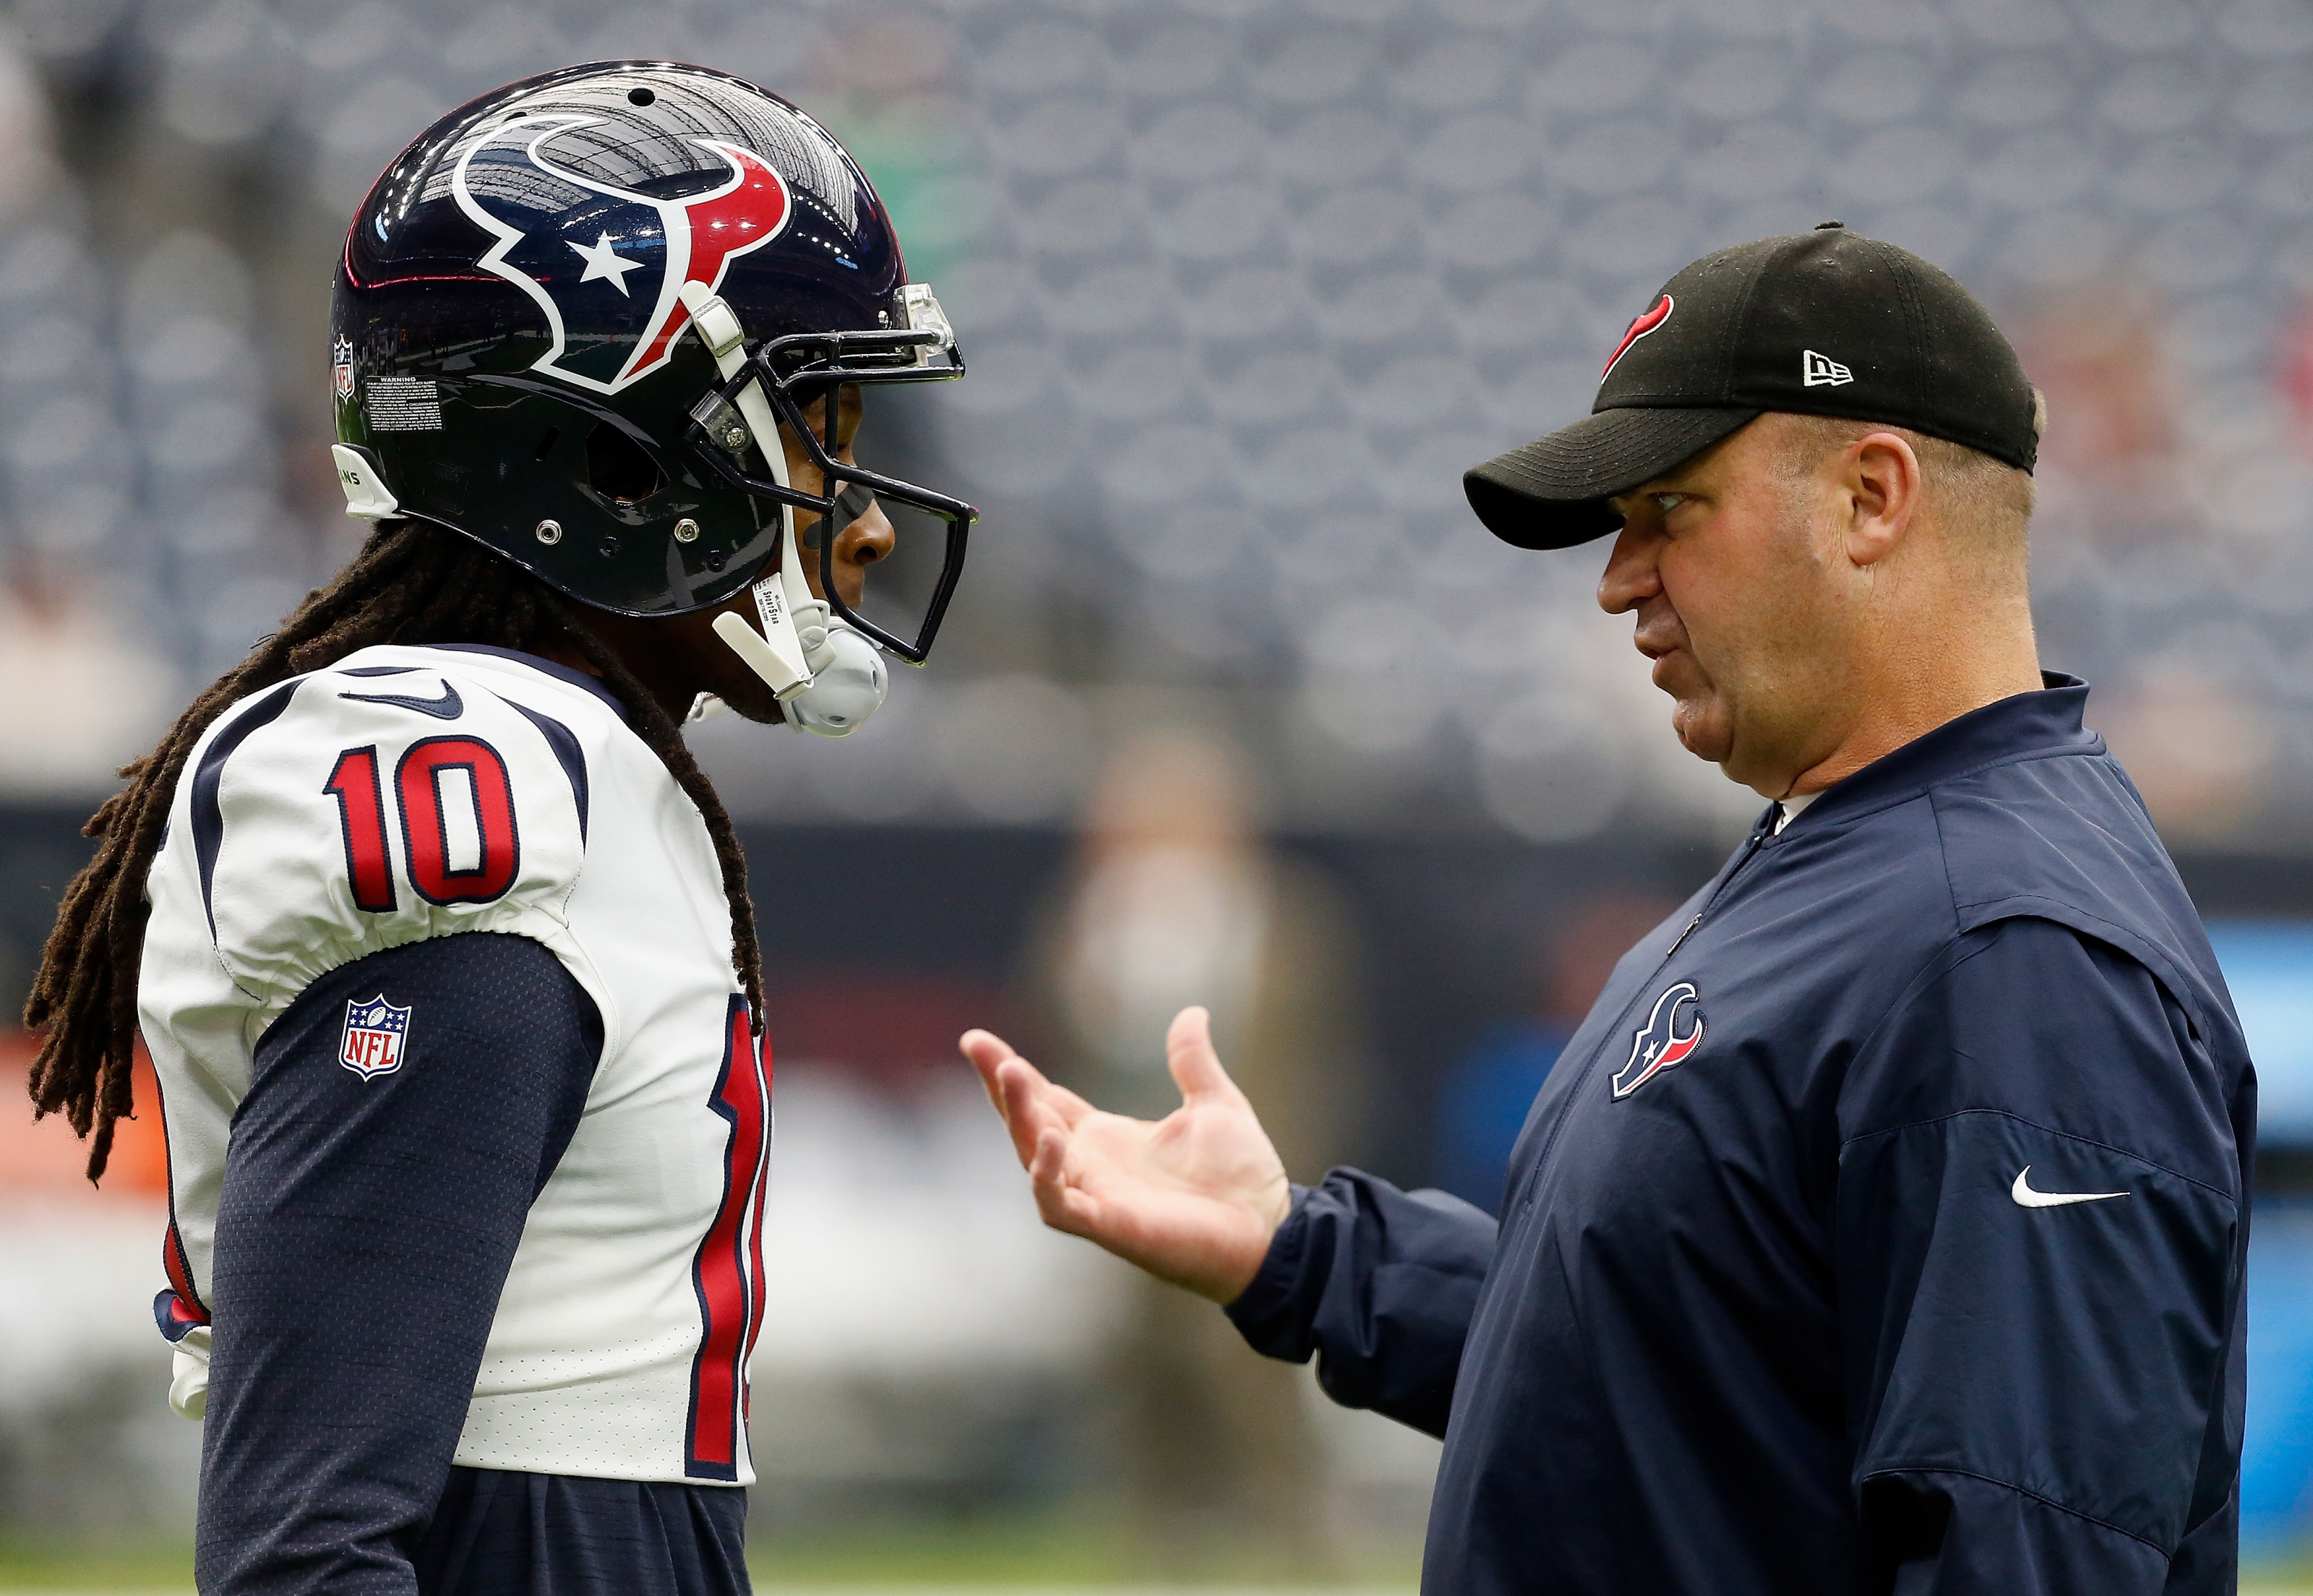 Houston Texans: Bill O'Brien stands by decision of trading DeAndre Hopkins